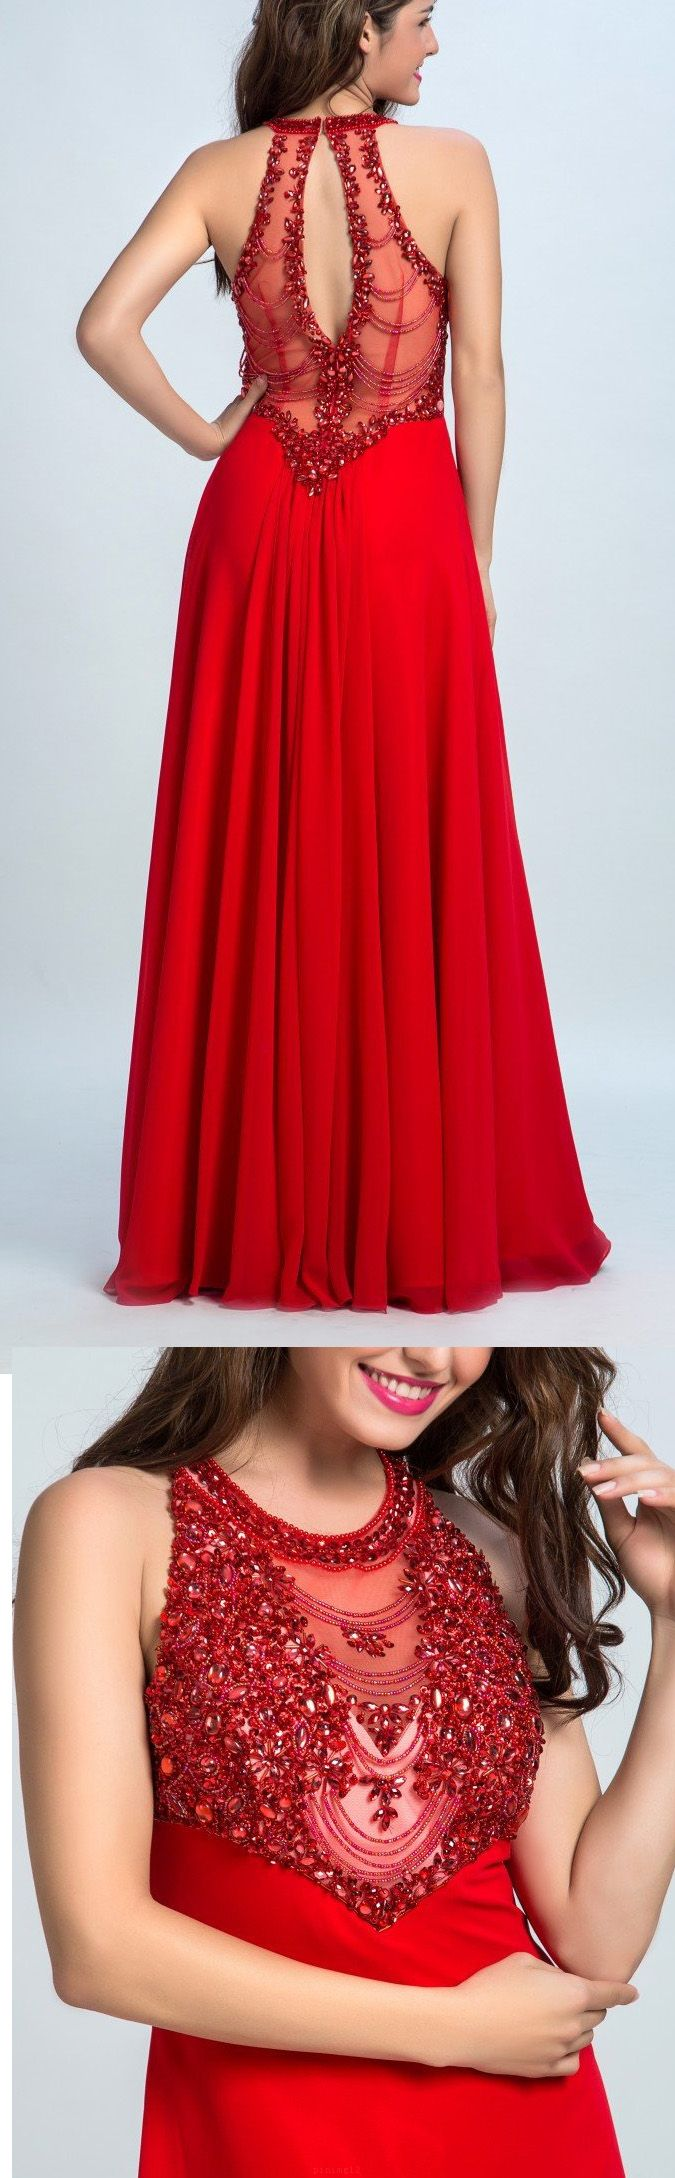 Red Prom Dresses, Long Prom Dresses, Open Back Prom Dresses, Long Red Prom Dresses, Custom Prom Dresses, Red Long Prom Dresses, Prom Dresses Long, Long Evening Dresses, Long Red dresses, Open Back Dresses, Red Long dresses, Open-back Evening Dresses, Beaded/Beading Evening Dresses, Chiffon Prom Dresses, Round Prom Dresses